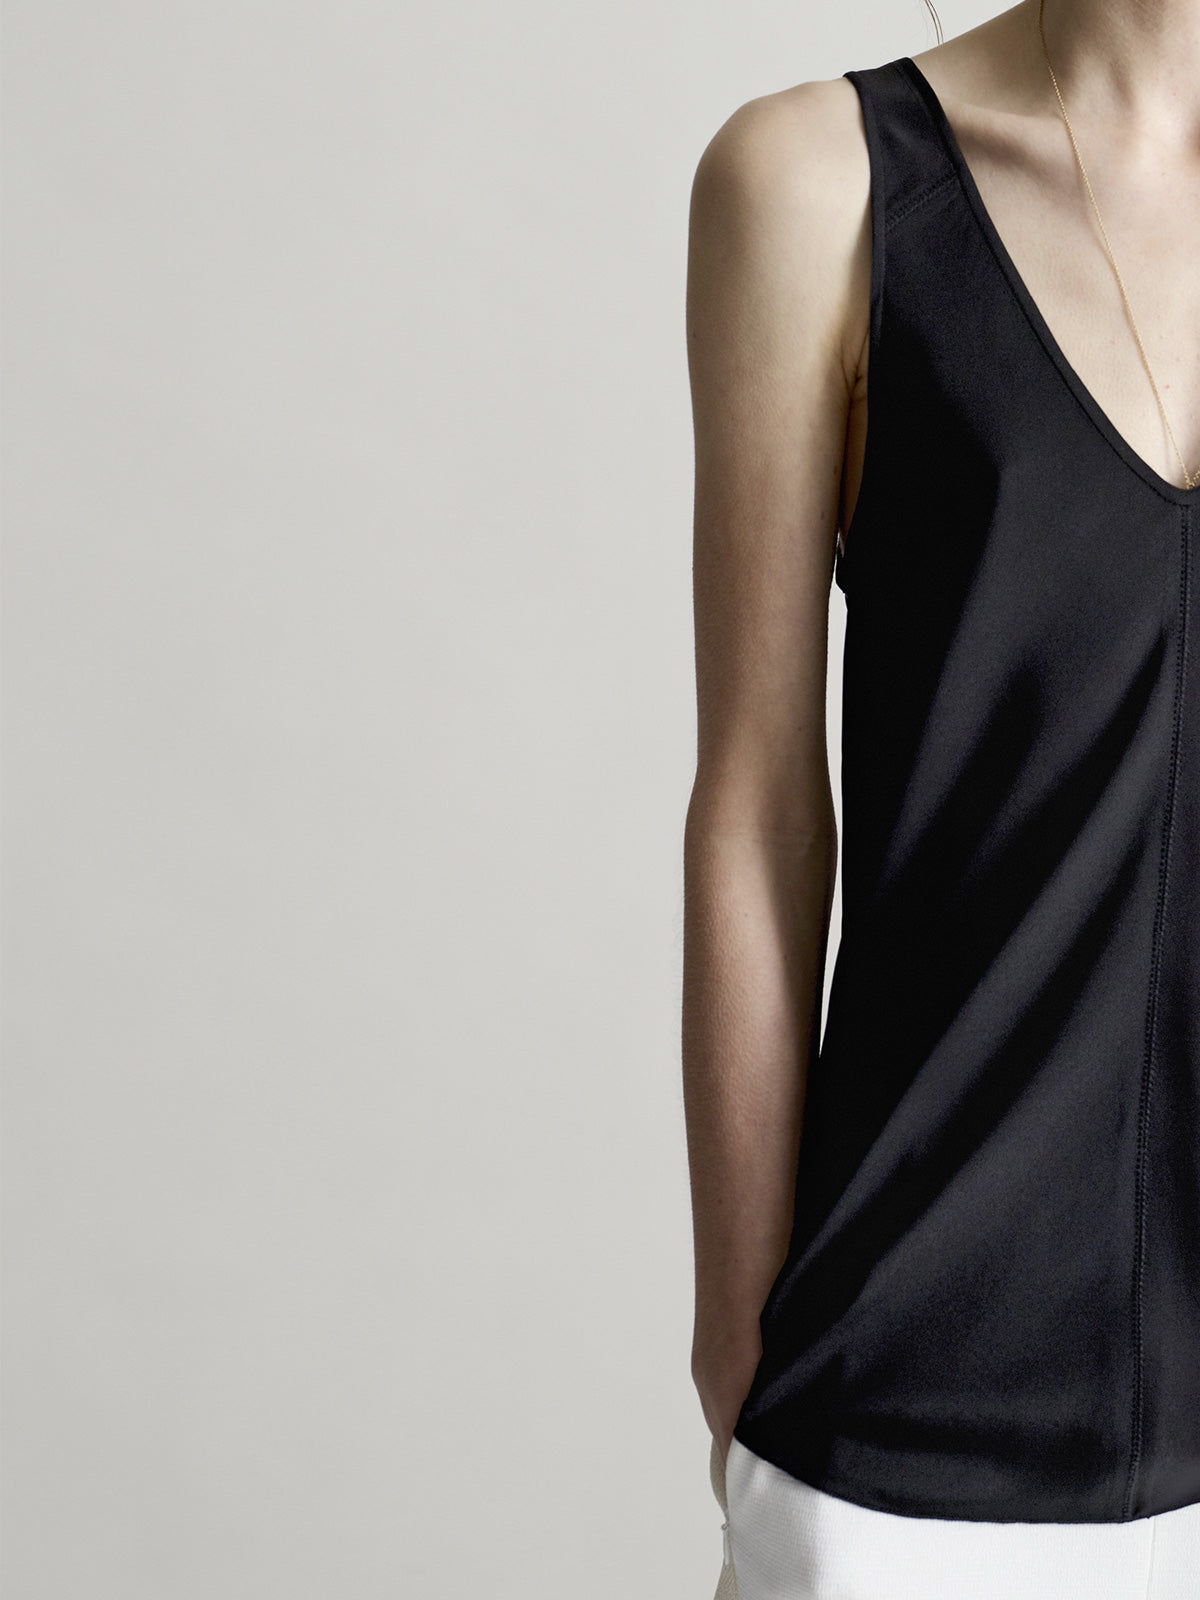 Josie Black Bias Vest - Sykes London